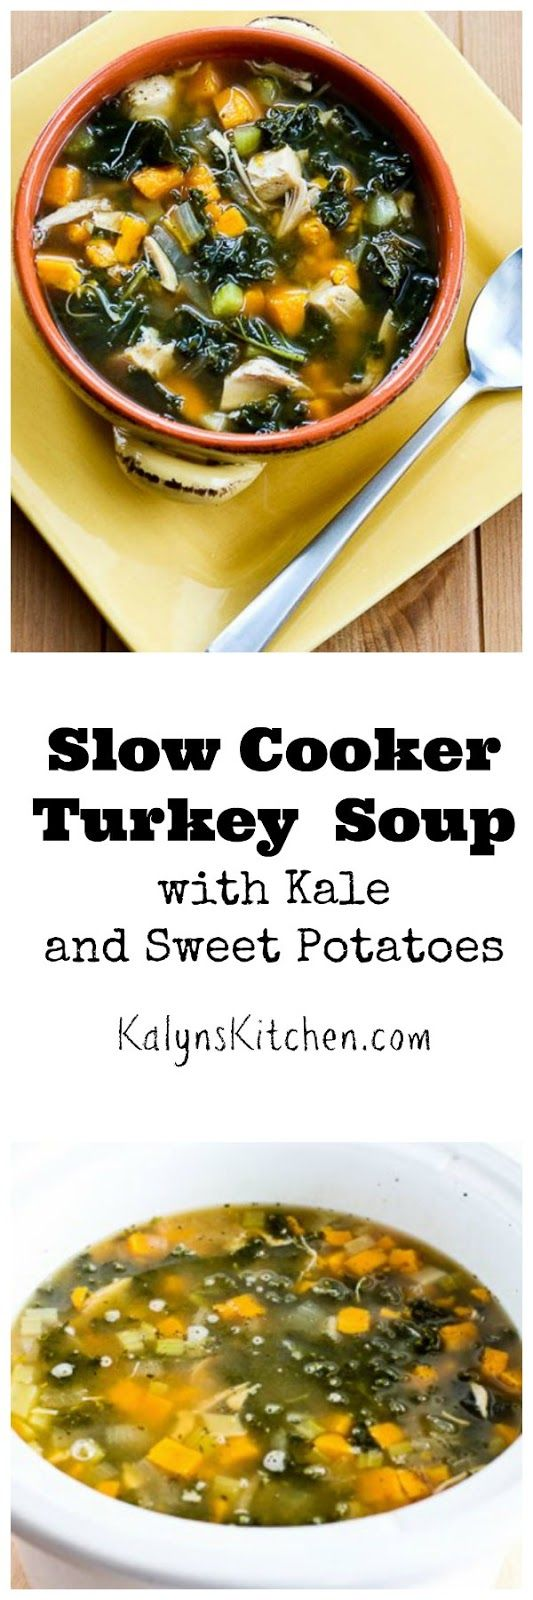 Slow Juicer Leftovers : 8 best images about Slow Cooker Recipes on Pinterest Leftover turkey, Stew and Sweet